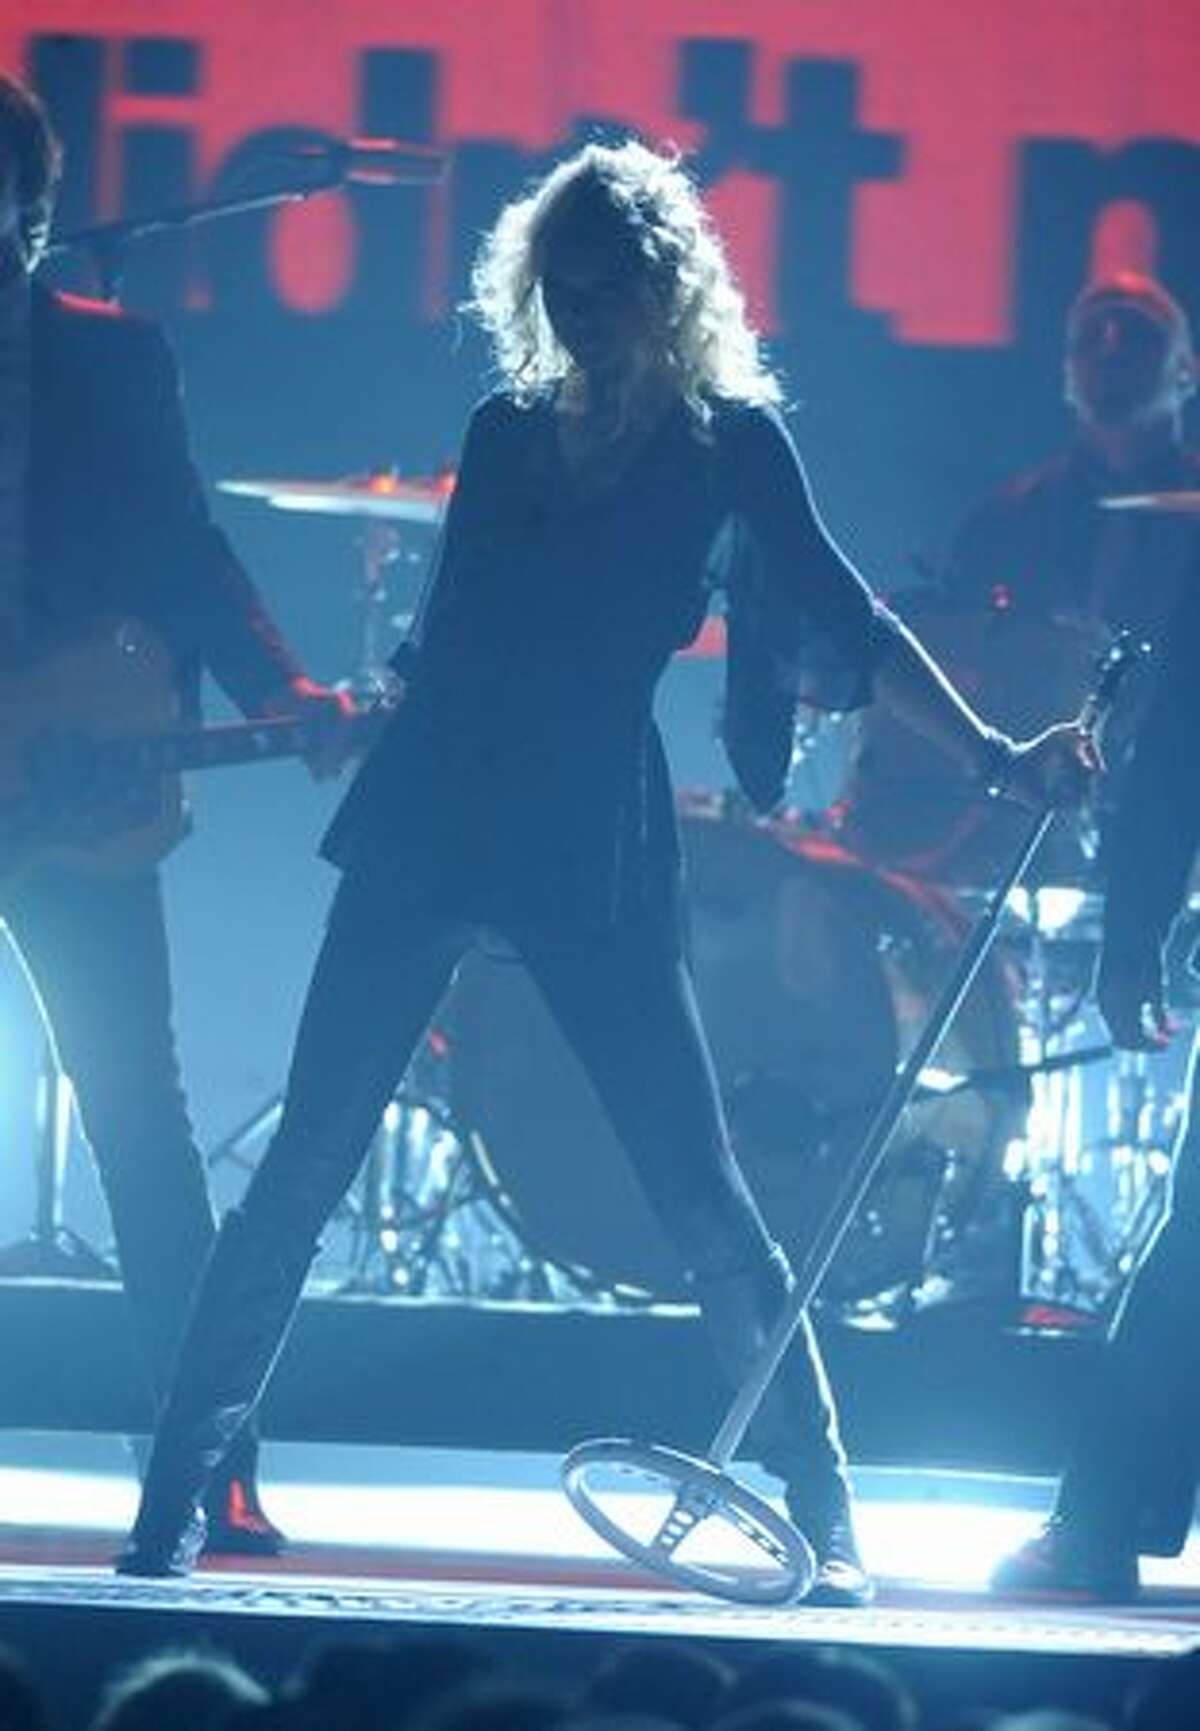 Musician Taylor Swift performs onstage.